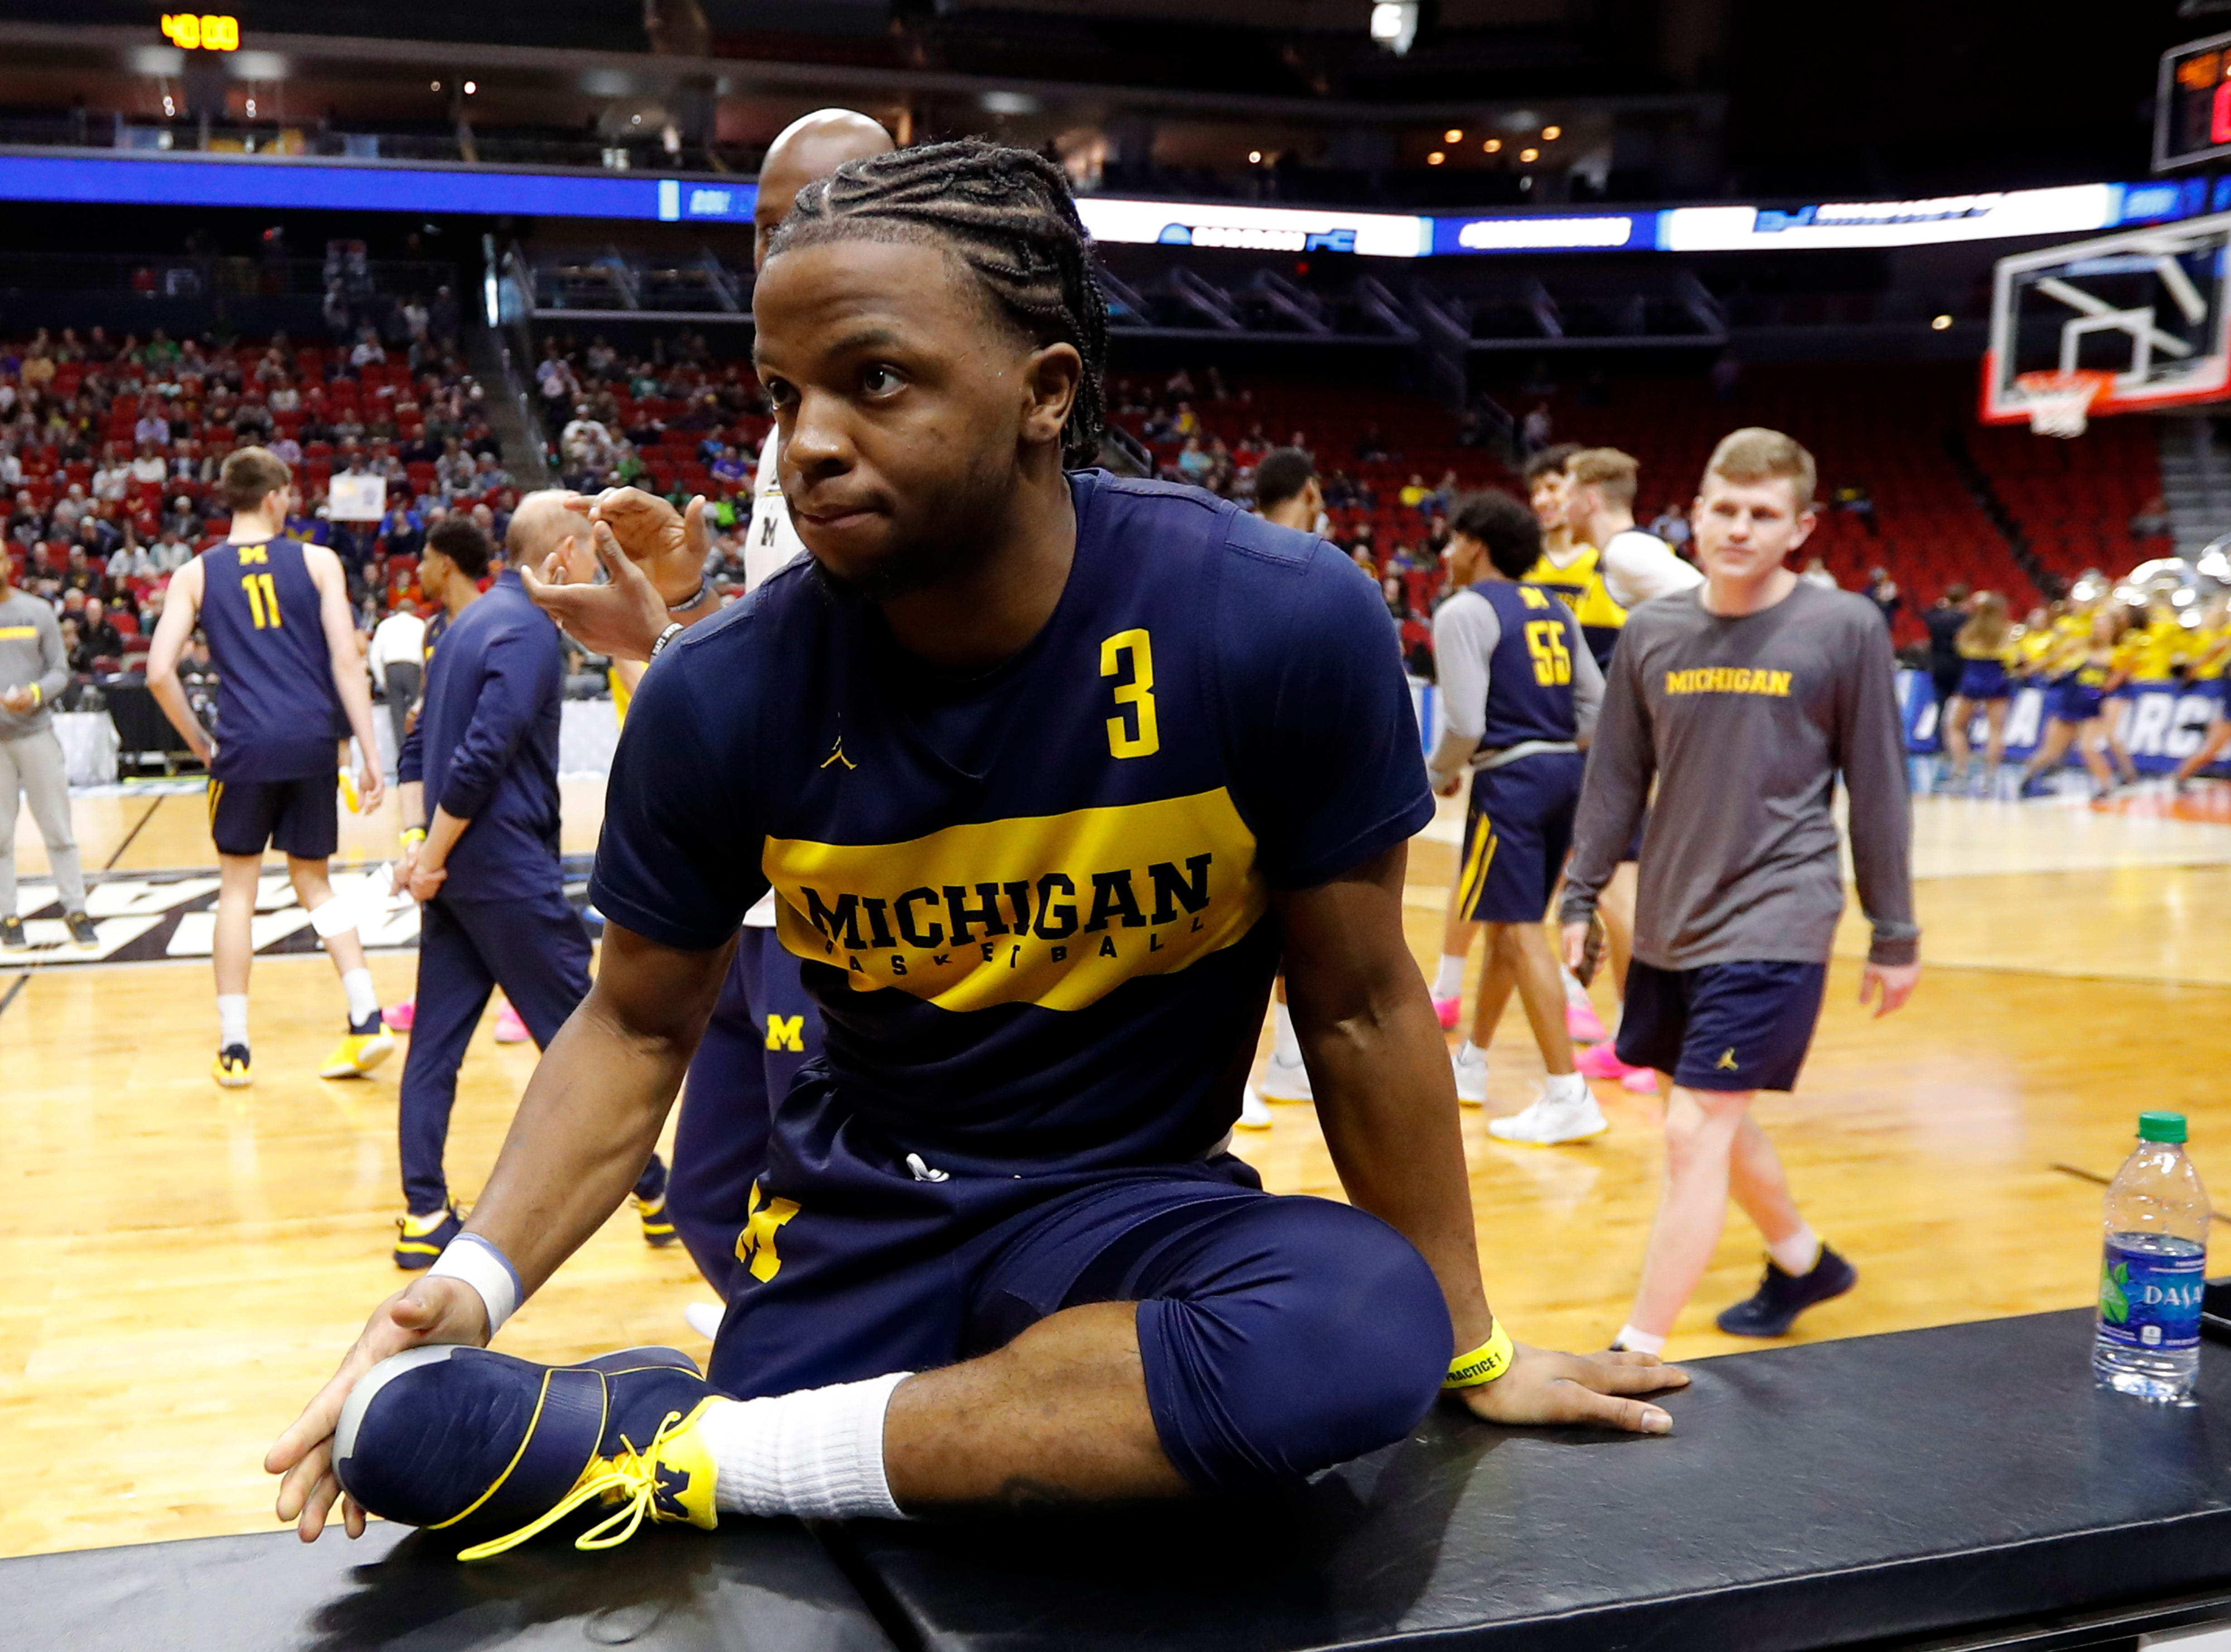 Michigan guard Zavier Simpson stretches during practice at the NCAA men's college basketball tournament, Wednesday, March 20, 2019, in Des Moines, Iowa. Michigan plays Montana on Thursday. (AP Photo/Charlie Neibergall)